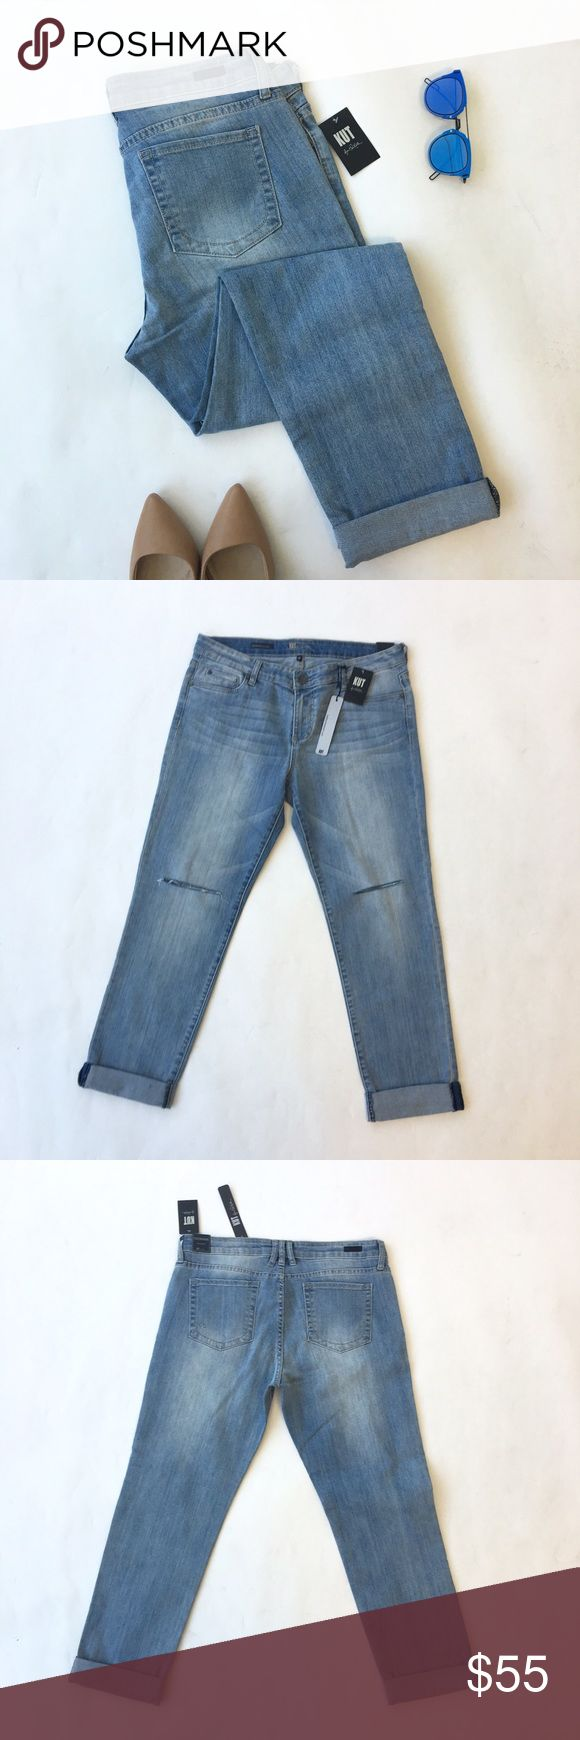 Kut Catherine Boyfriend Jeans Boyfriend jeans with classic five pocket design and slits at knees in light vintage wash. 99% cotton, 1% spandex. Can be worn cuffed or unrolled. Brand new with tags. Stock photo from Nordstrom shown for fit. Please carefully review each photo before purchase as they are the best descriptors of the item. My price is firm. No trades. First come, first served. Thank you! :) KUT from the Kloth Jeans Boyfriend